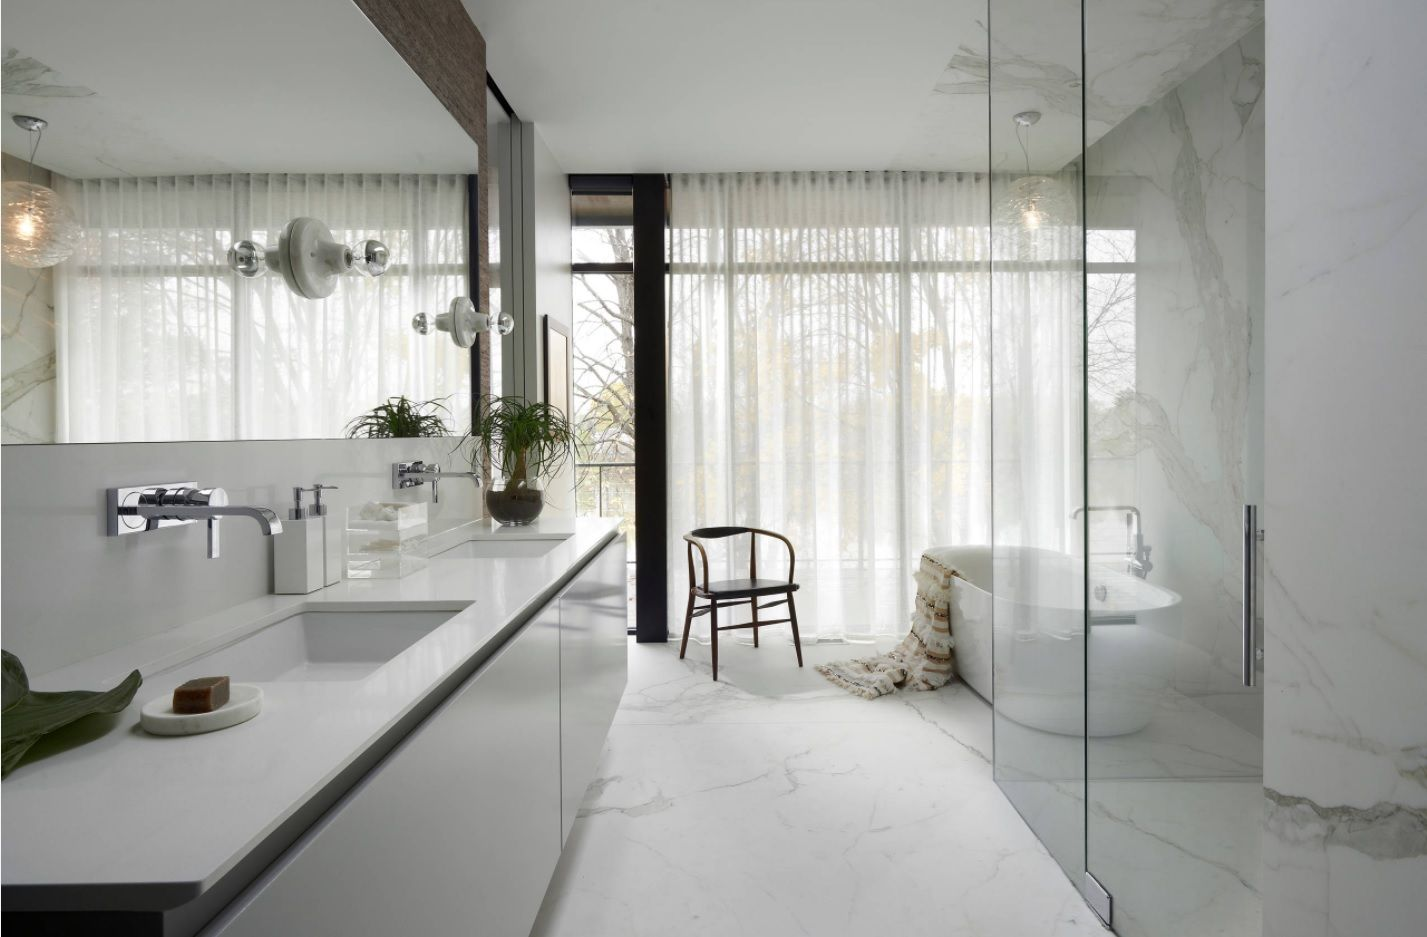 Master Bathroom Design Ideas With Real Interior Photos Large Panoramic Window Behind The Tulle And